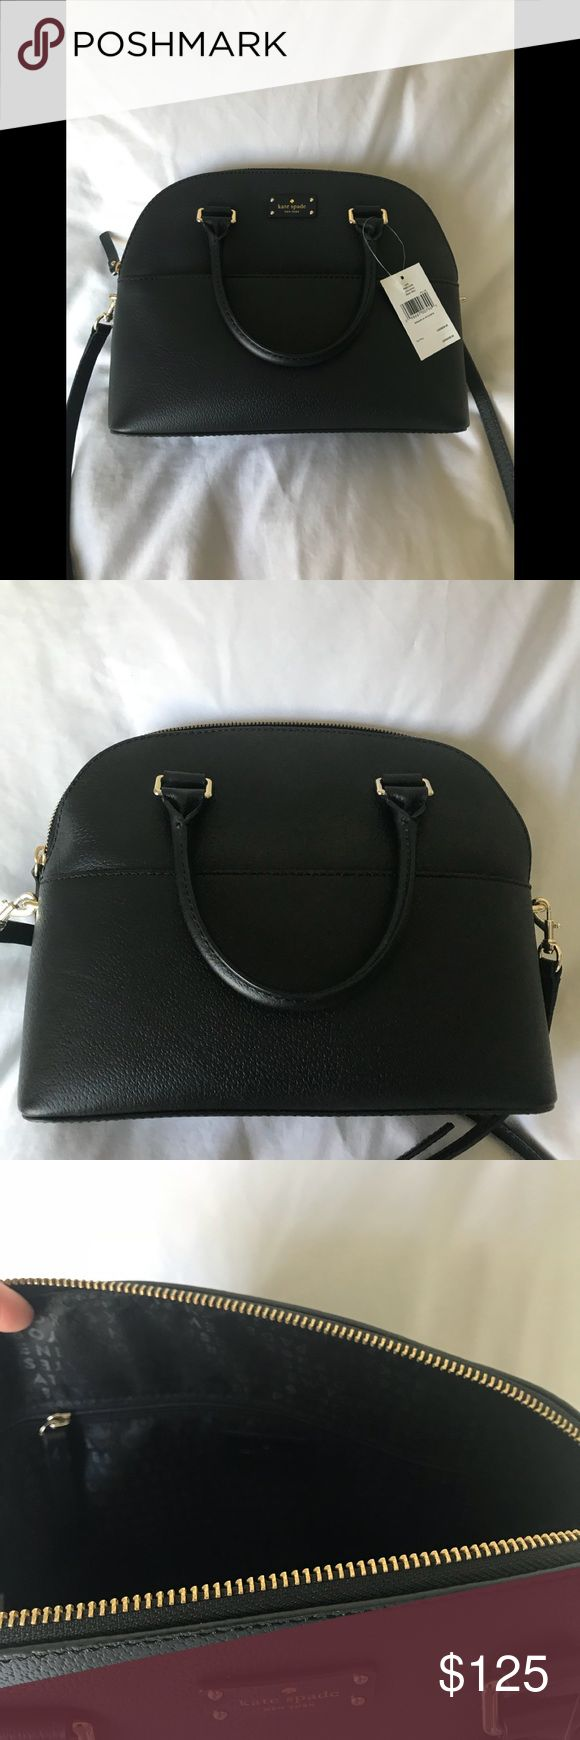 Kate Sapde hand bag This Kate spade handbag brand new never been used. Please check the pictures. kate spade Bags Satchels